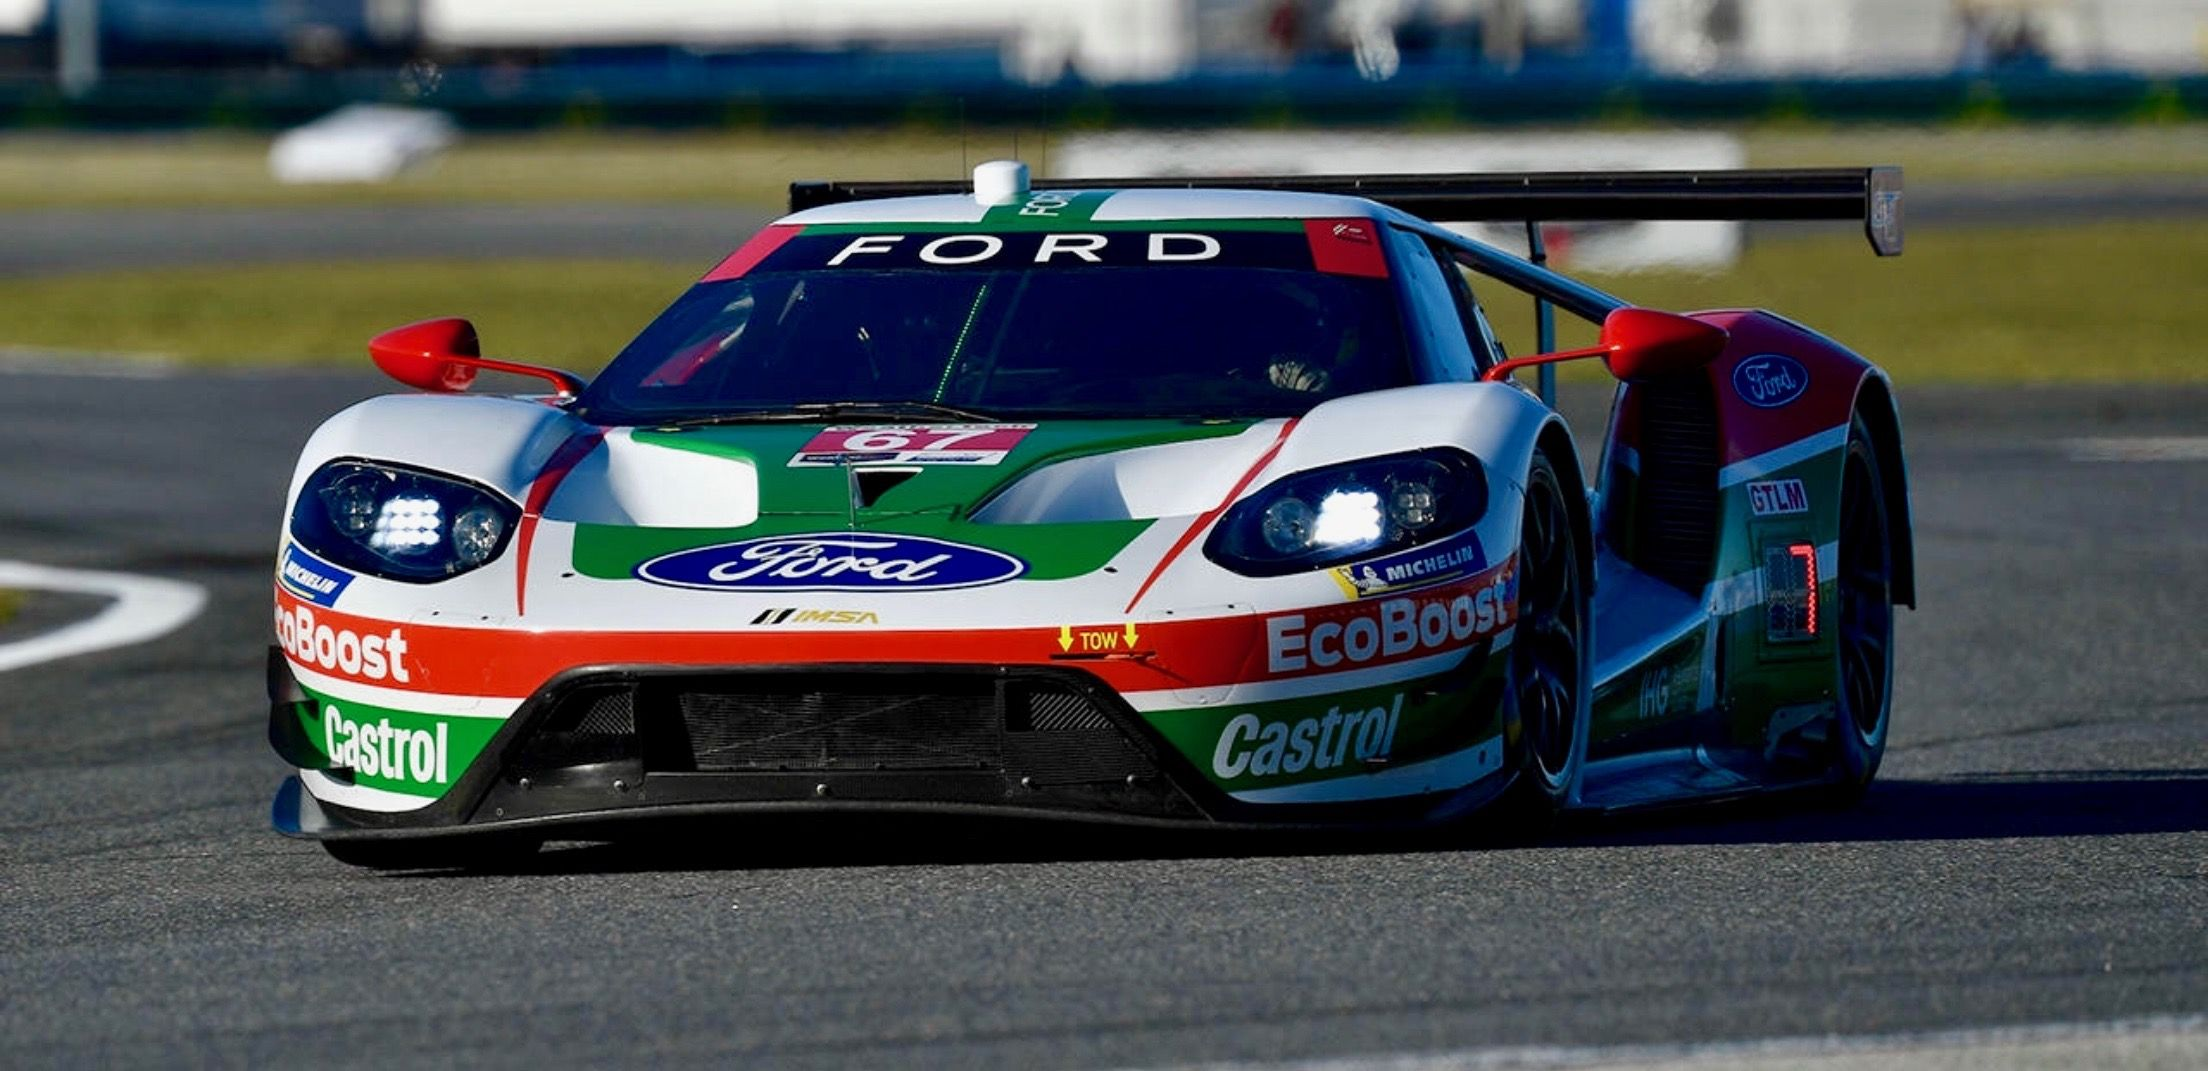 2019 Rolex 24 At Daytona Ford Gt Gtlm Retro Livery Ford Gt